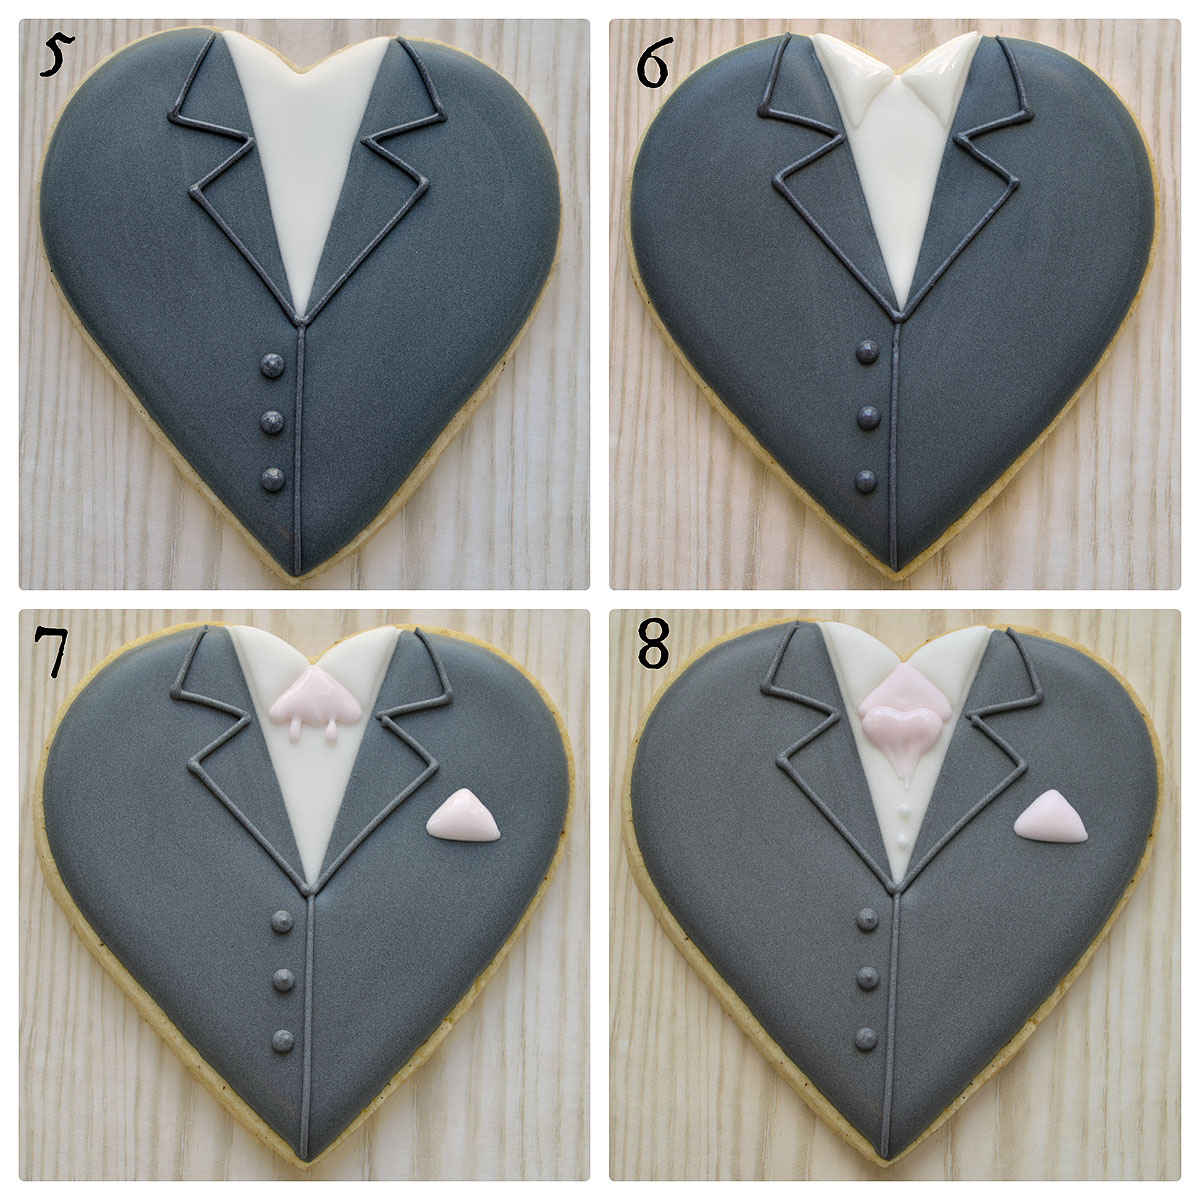 Final four steps in creating groom on a heart decorated cookie for wedding favours, by Honeycat Cookies